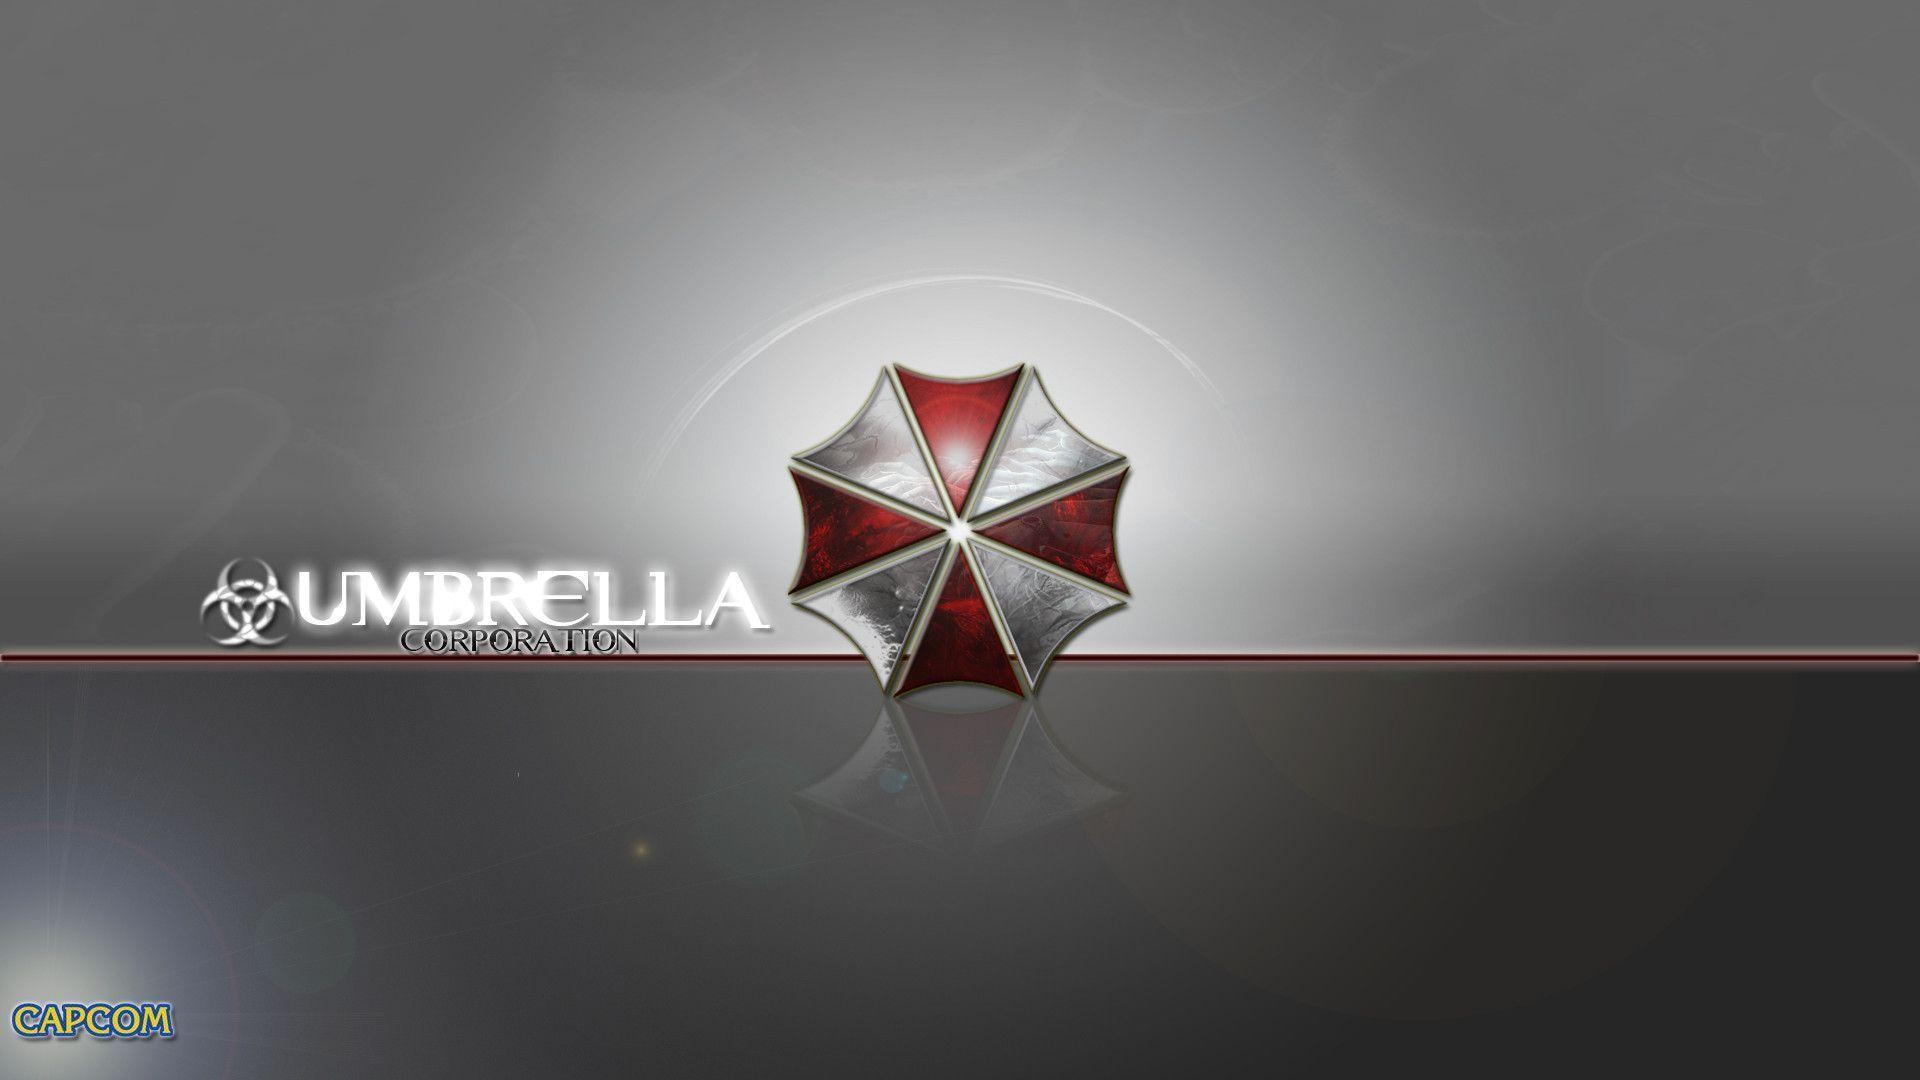 Umbrella Corporation by BIGB